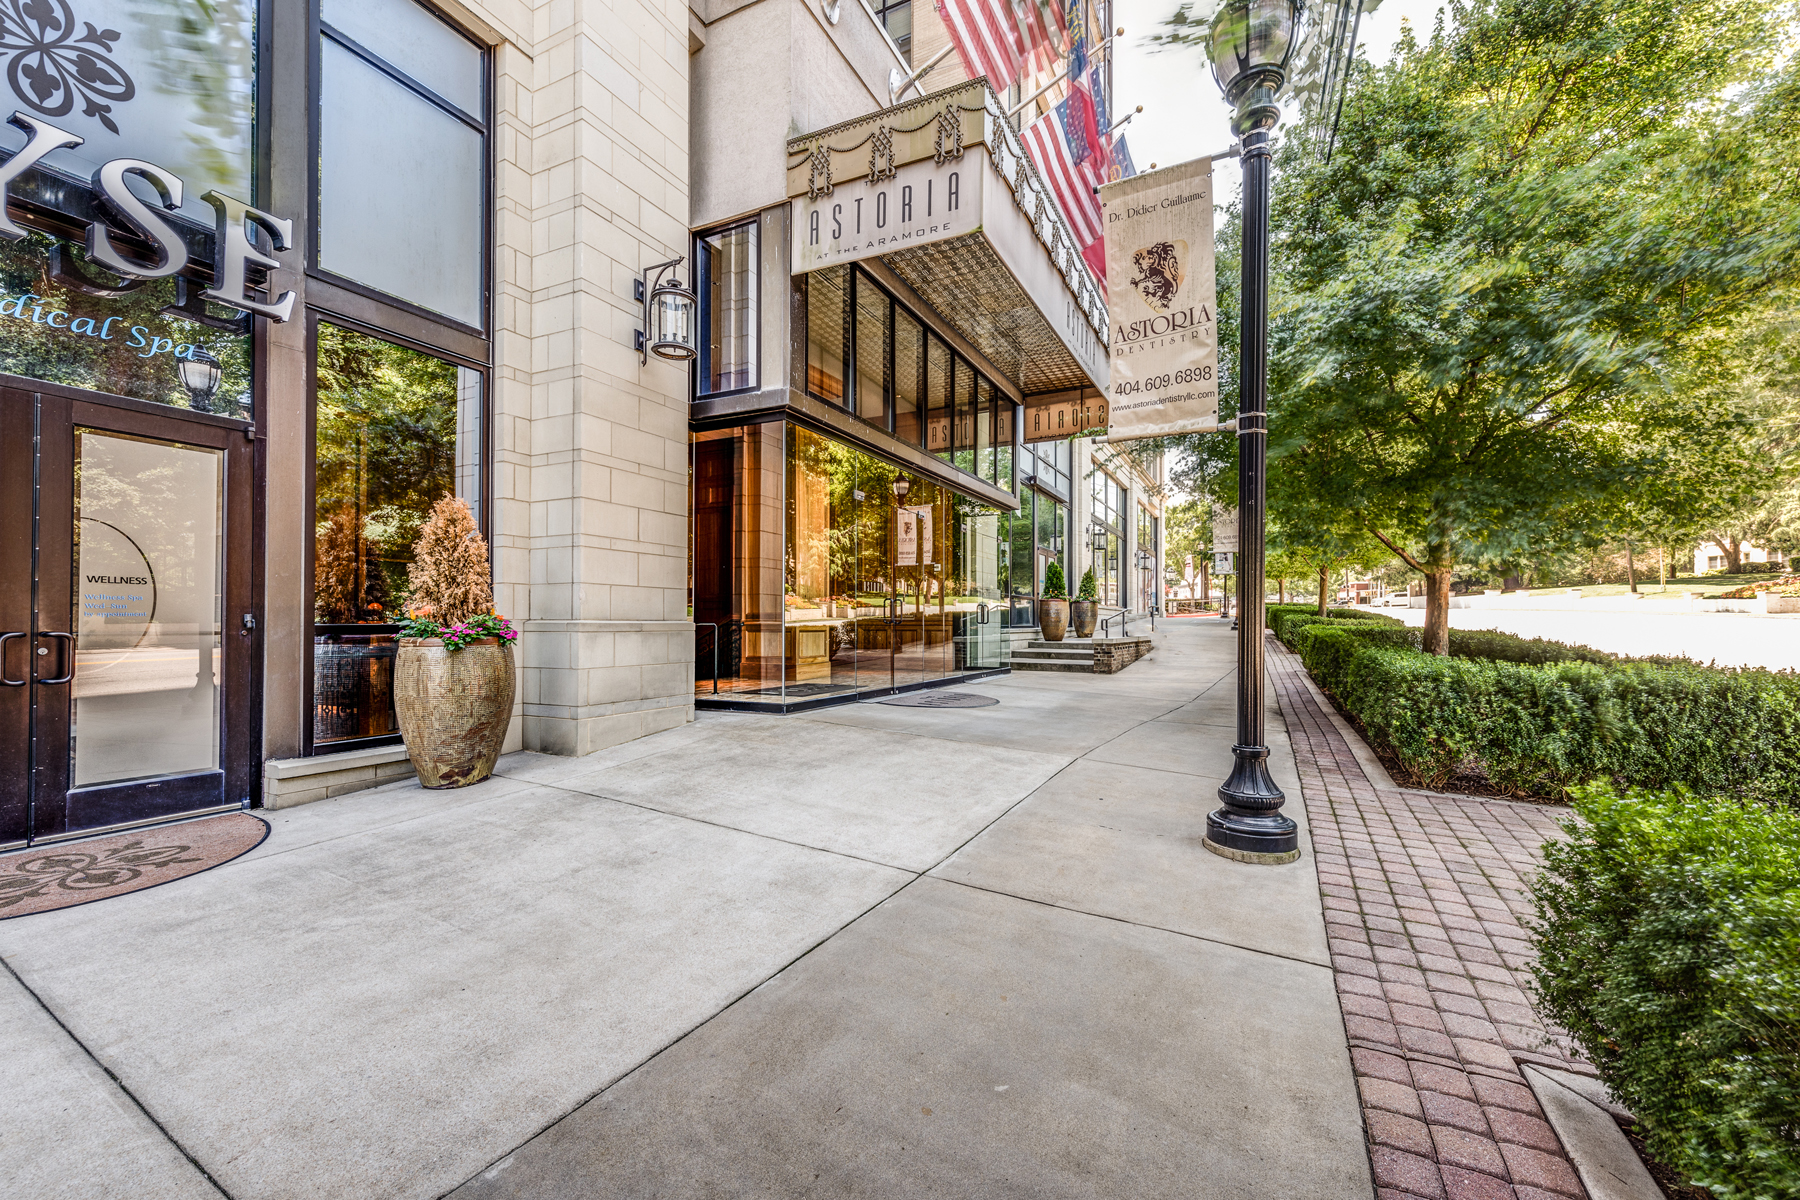 Condominium for Sale at Luxury Condo With Uncompromised Services In Hot Boutique Community 2233 Peachtree Road NE No. 604 Atlanta, Georgia 30309 United States